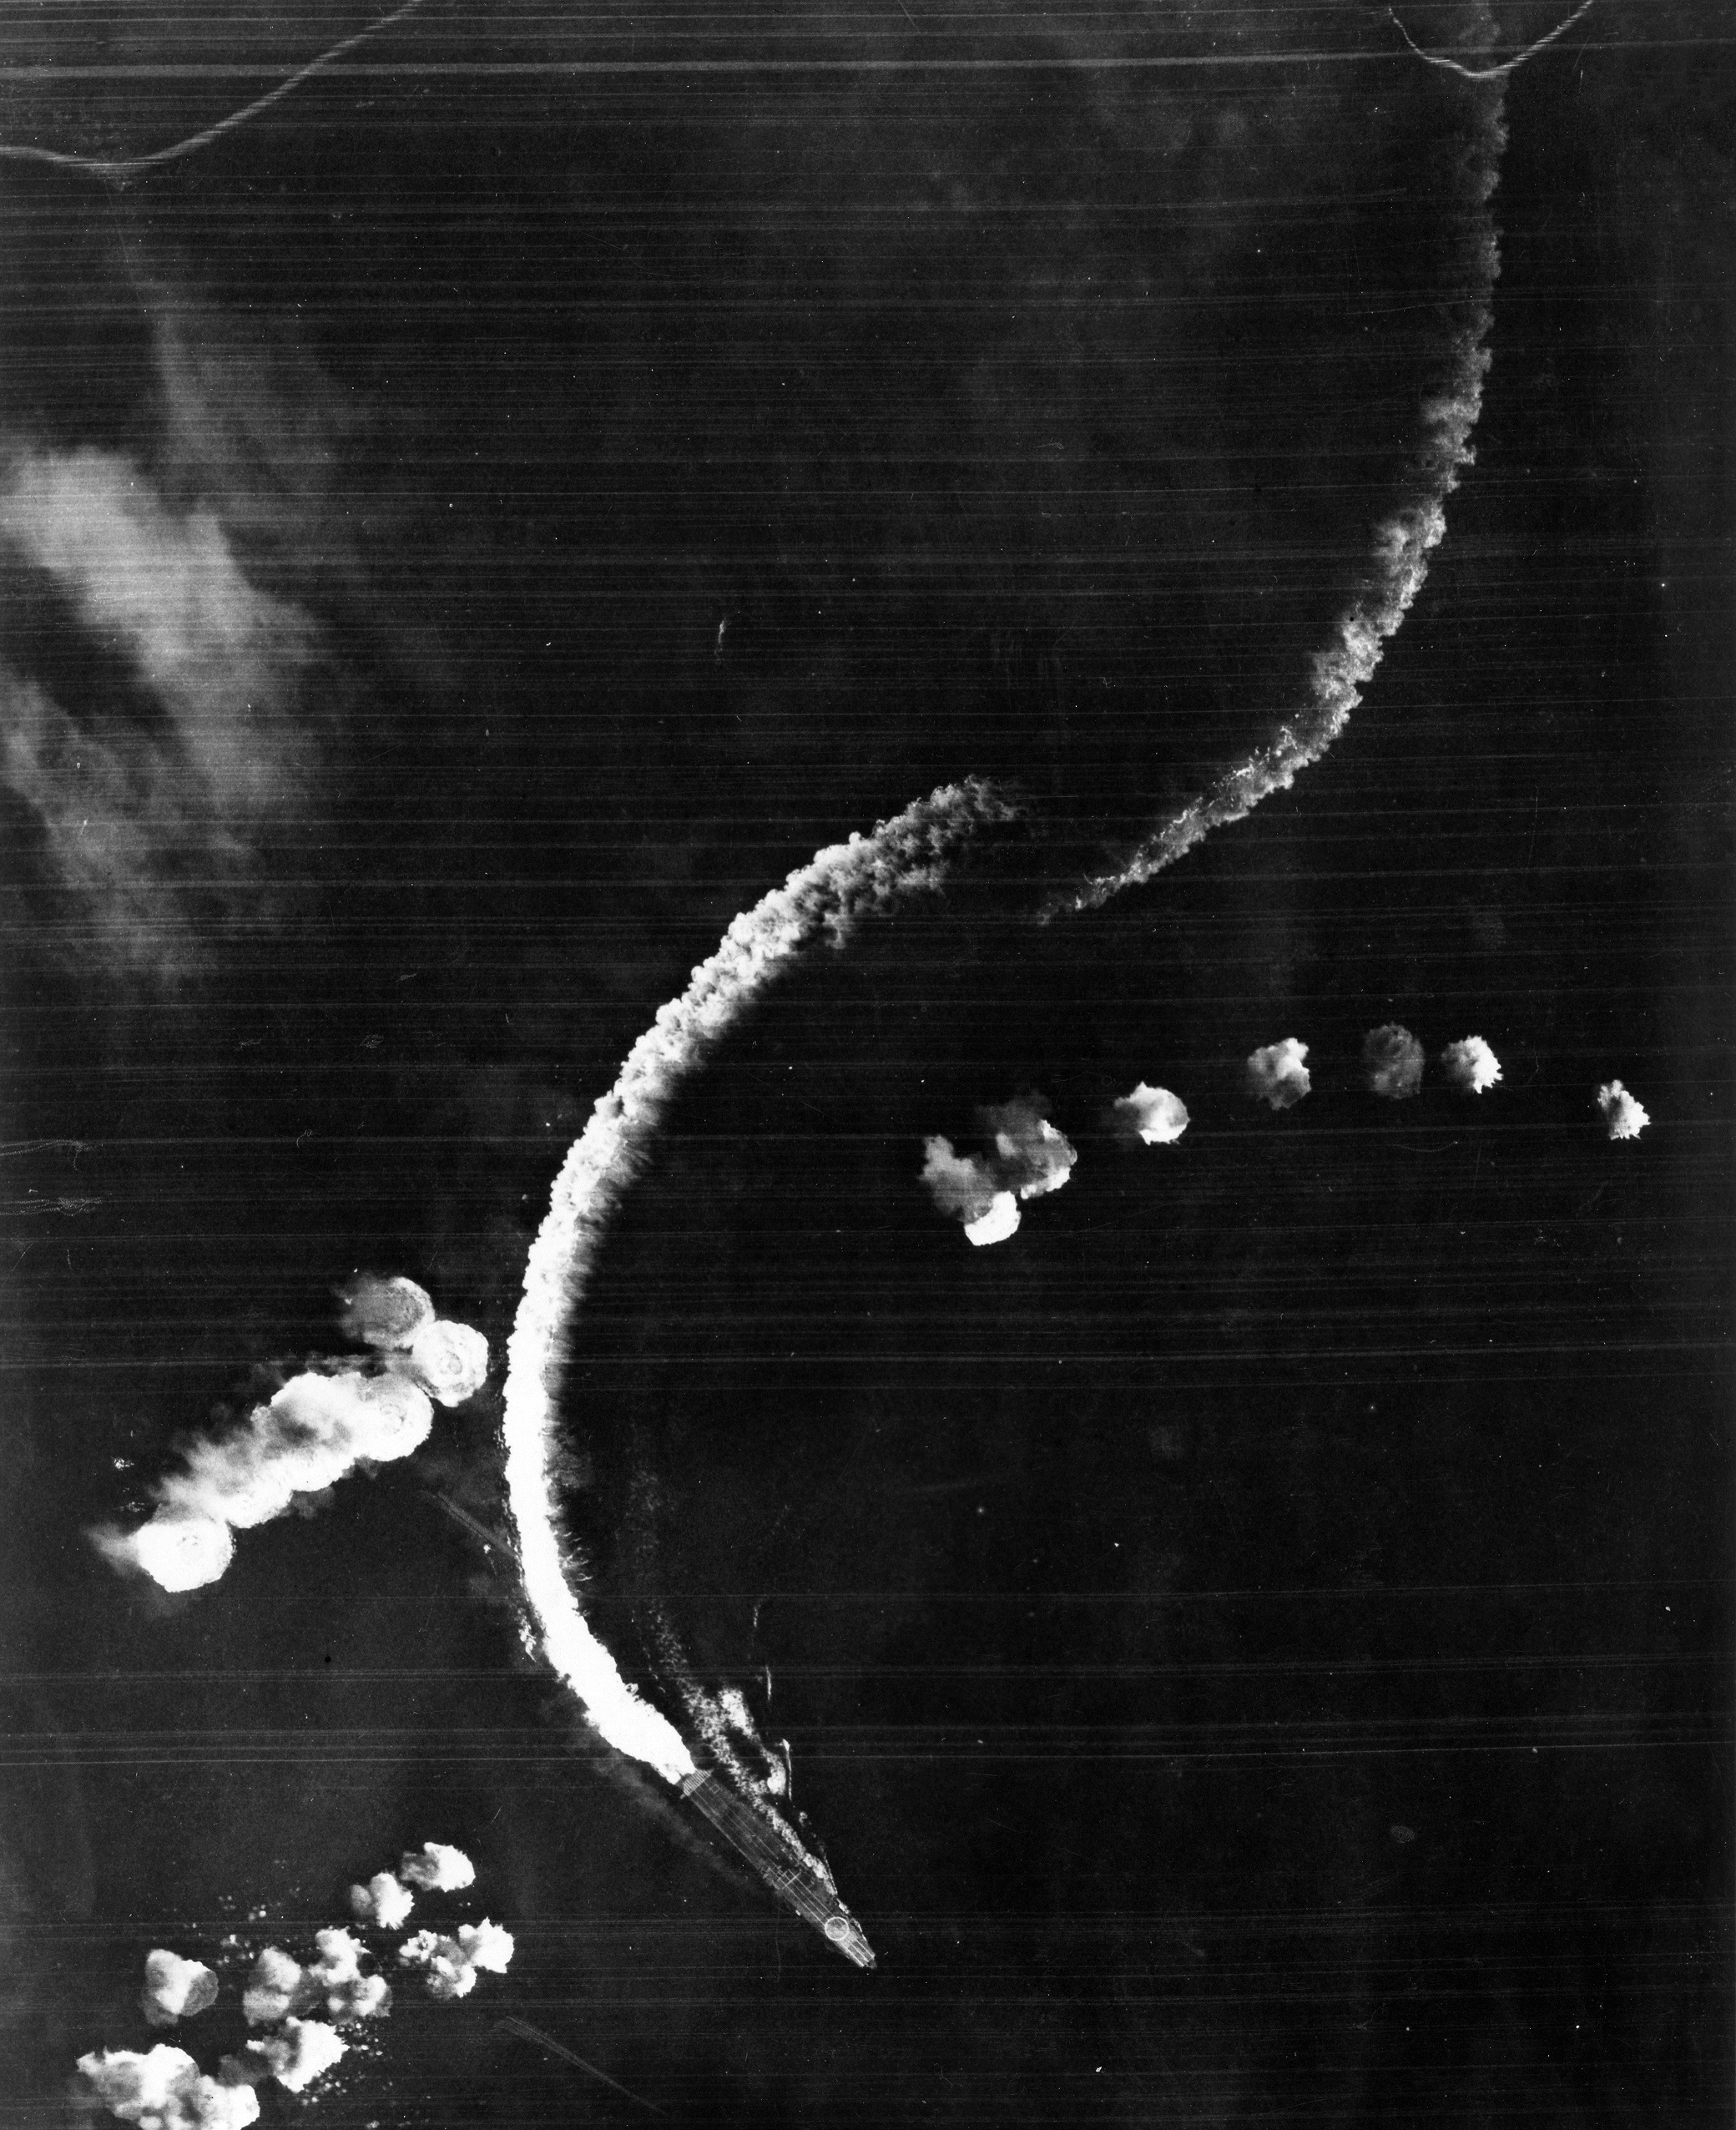 Here The Japanese Carrier Hiryu Dodges Bombs Dropped From Midway Based B 17 Bombers